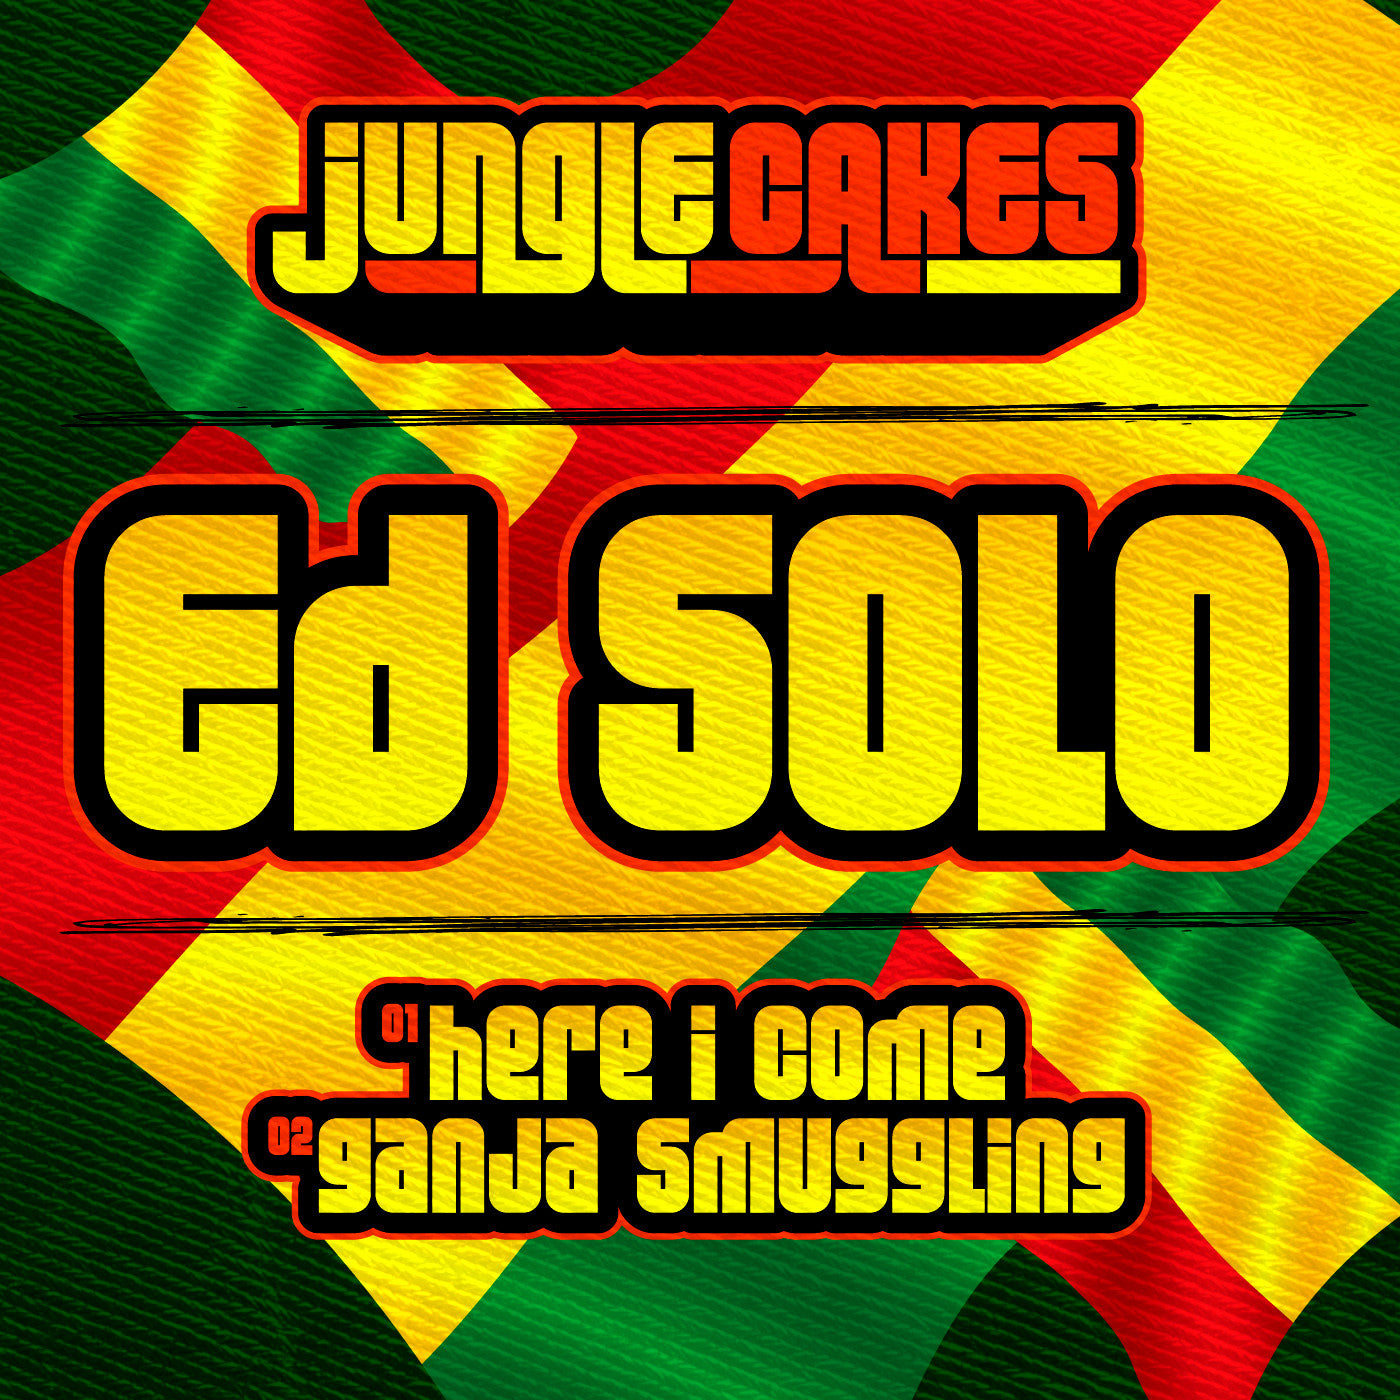 Ed Solo - Here I Come / Ganja Smuggling - Unearthed Sounds